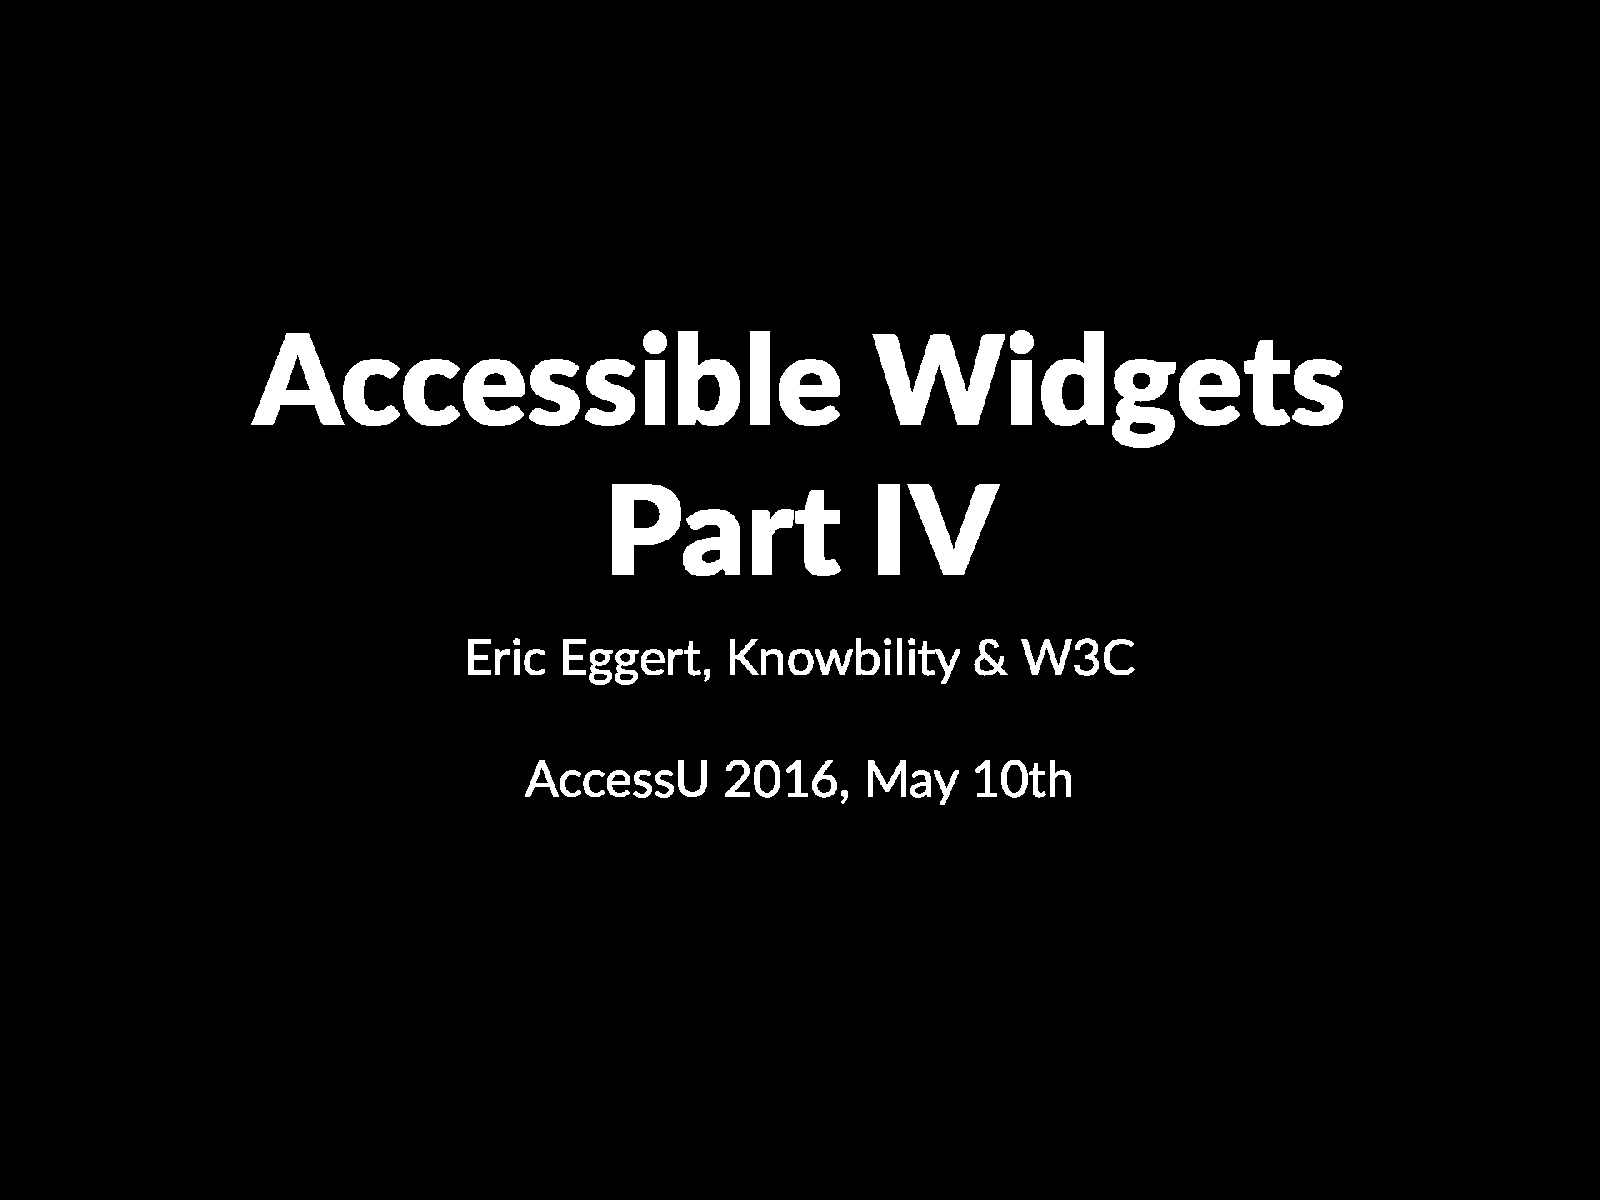 Accessible Widgets 4/4 (Class)